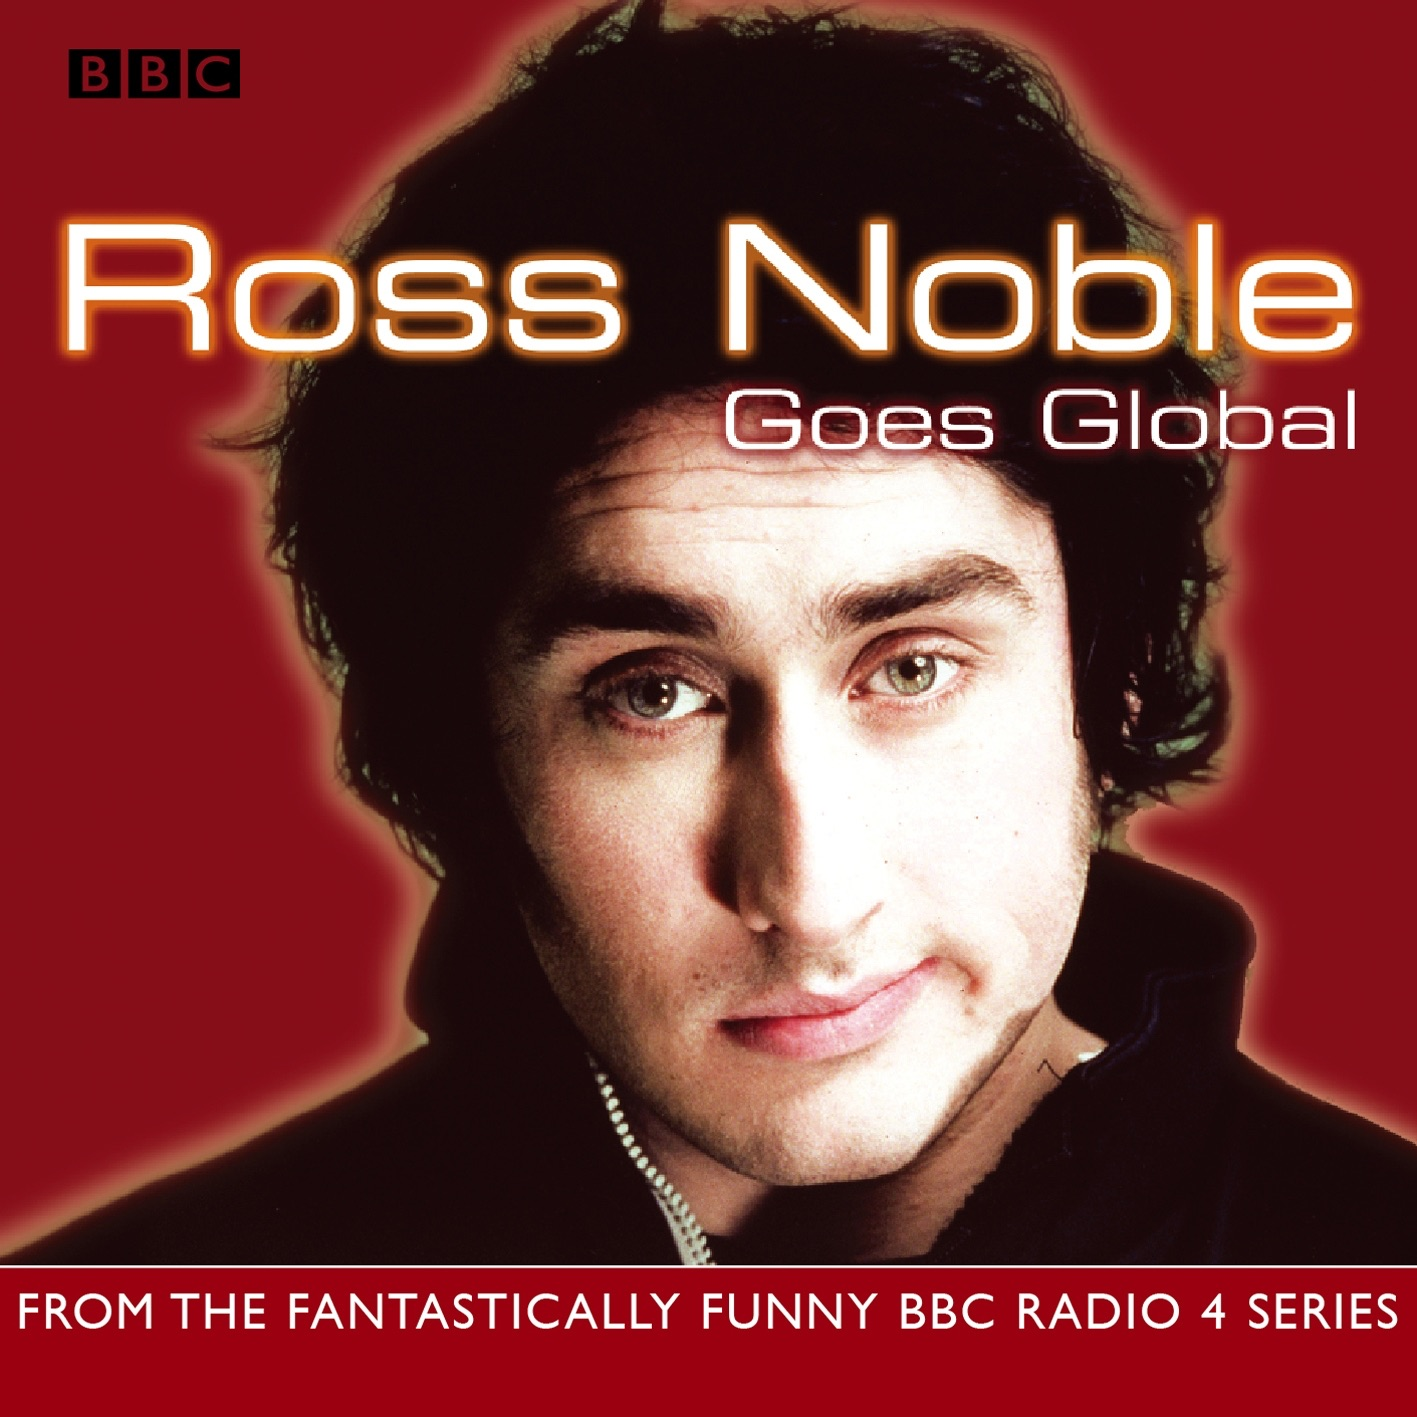 Ireland: Ross Noble Goes Global (Series 1)